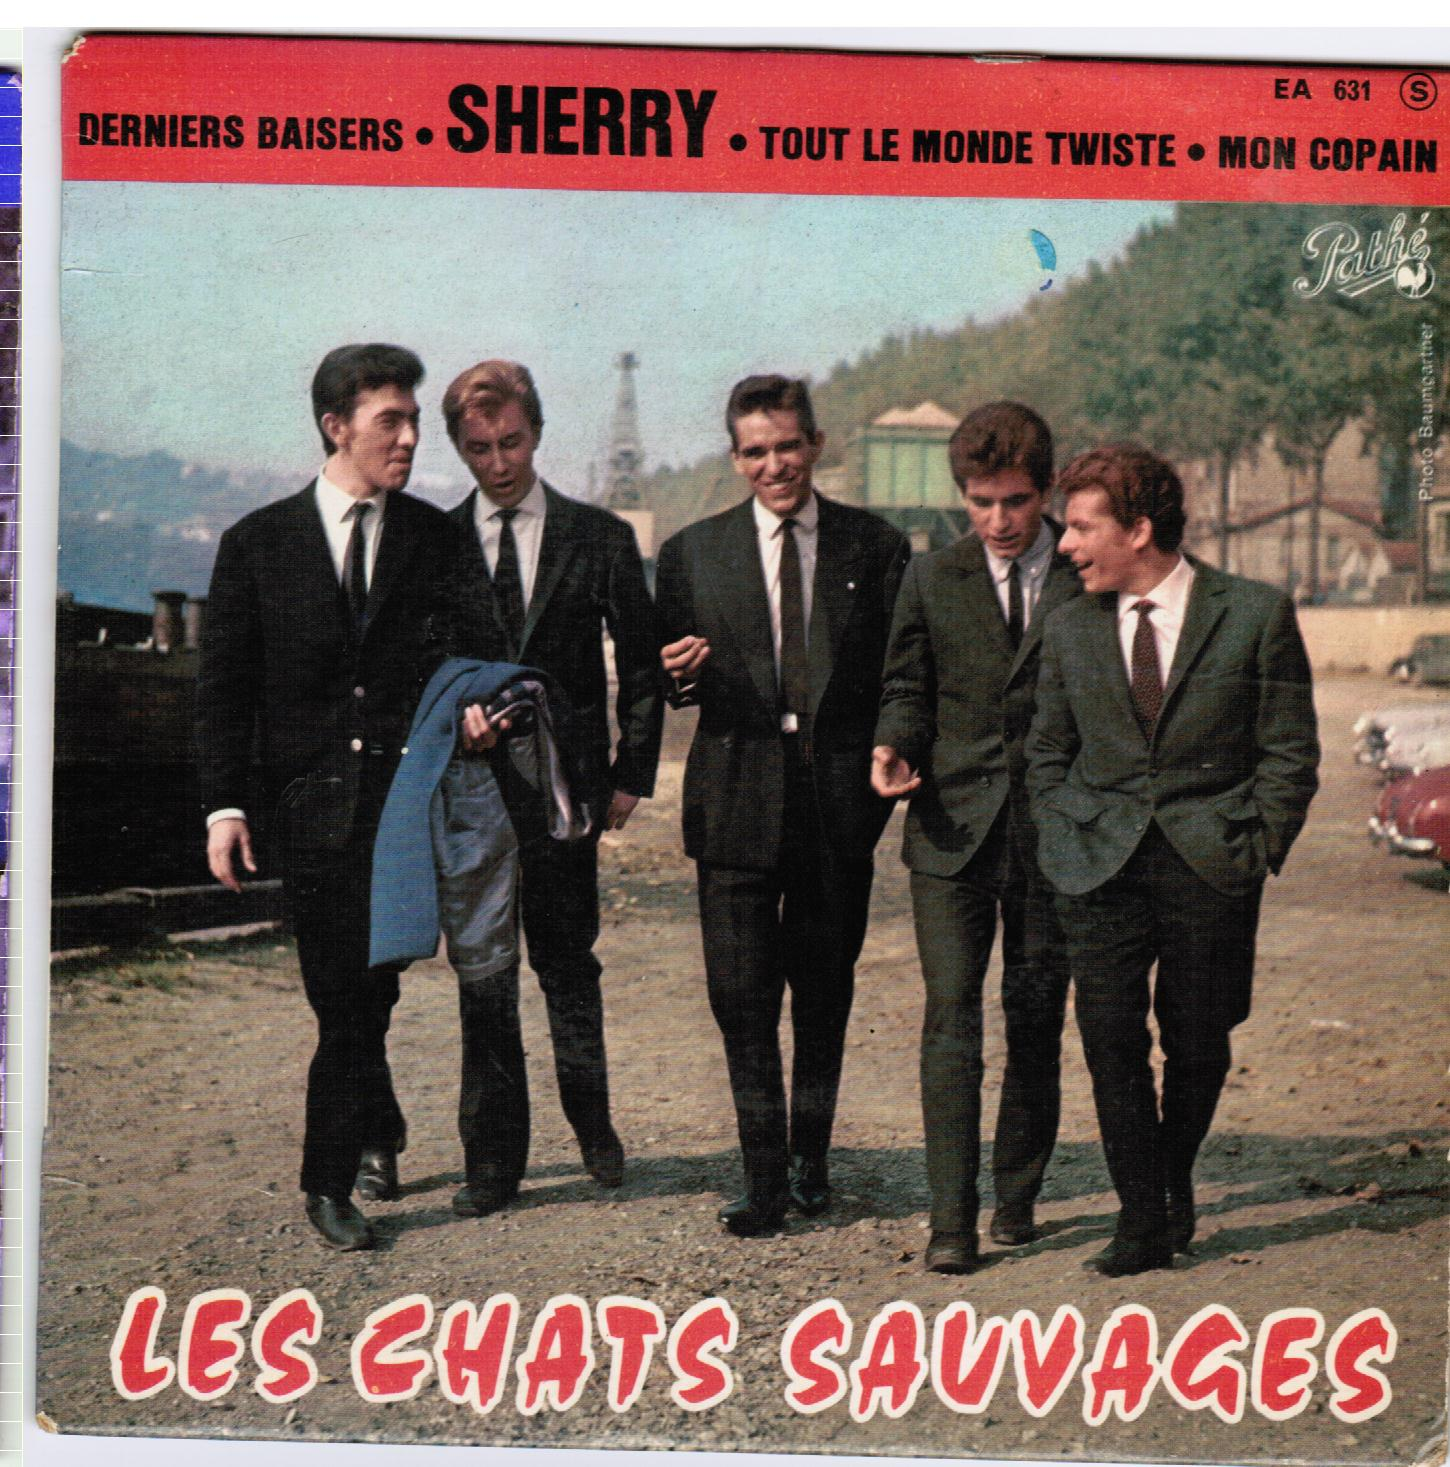 Les Chats Sauvages | Sherry French EP